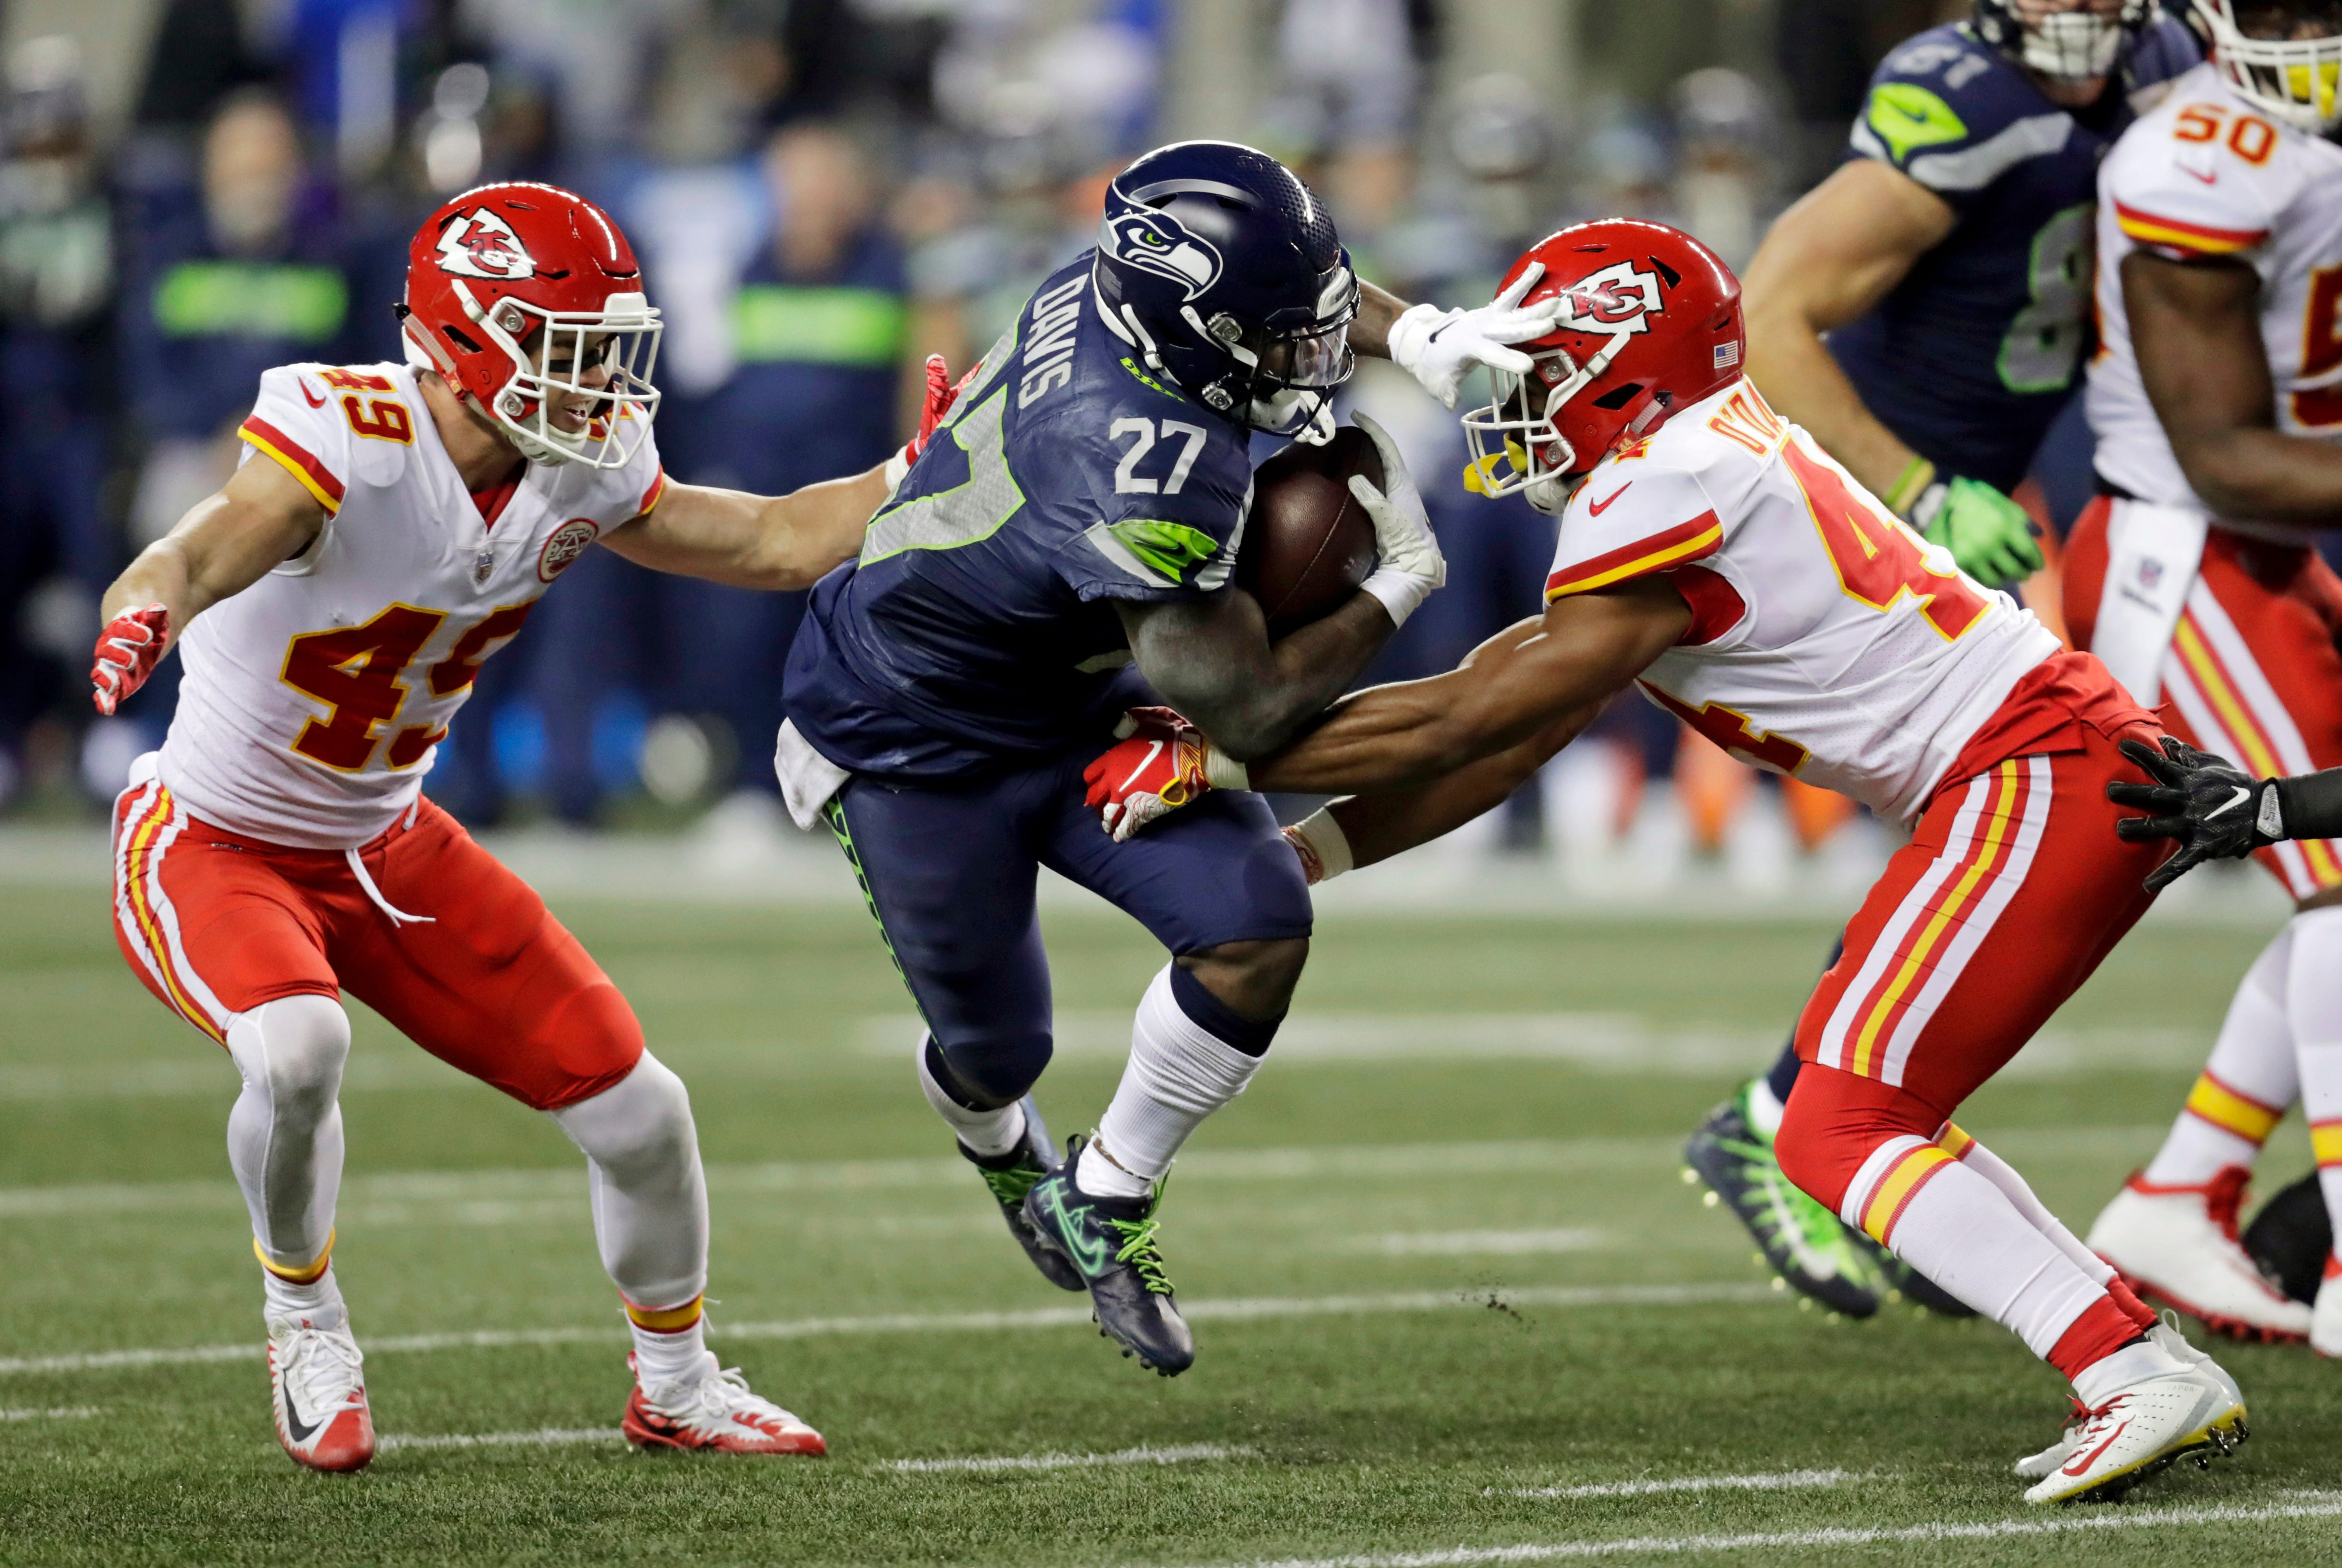 Seahawks clinch playoff berth outlasting Chiefs 38-31